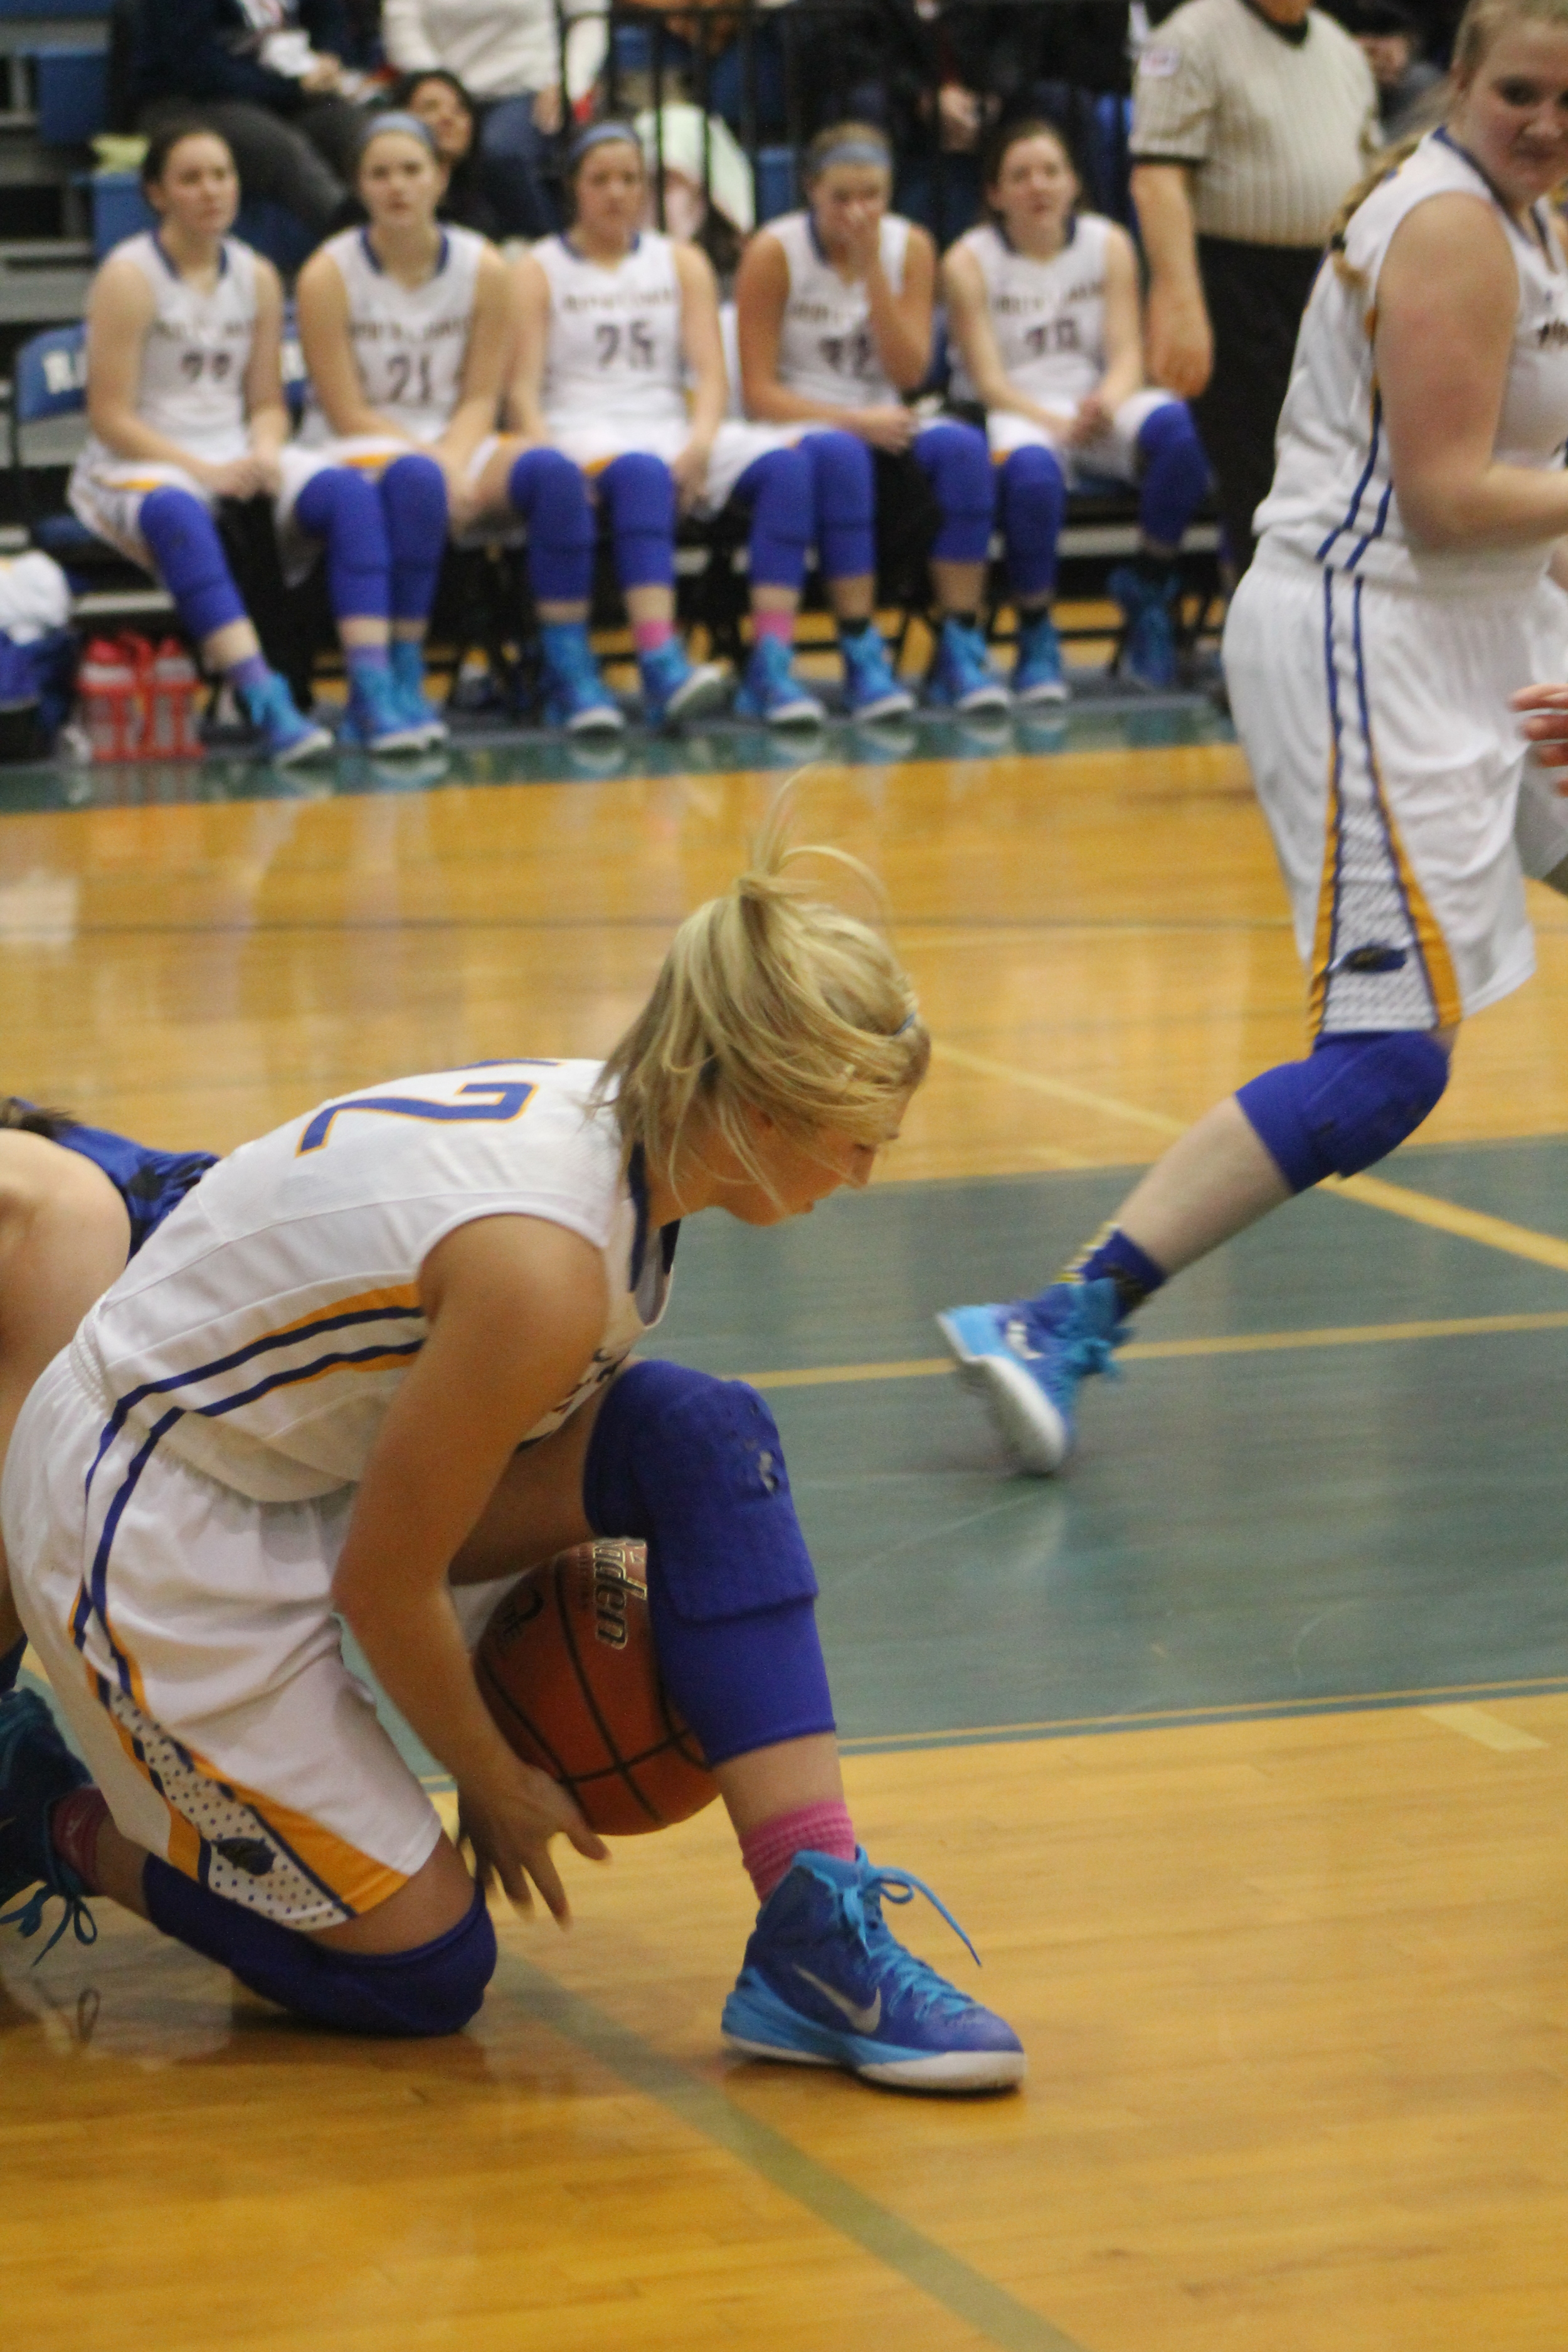 (Photo by Adam Routon) Lexie Stephens with a steal against Spring Hill